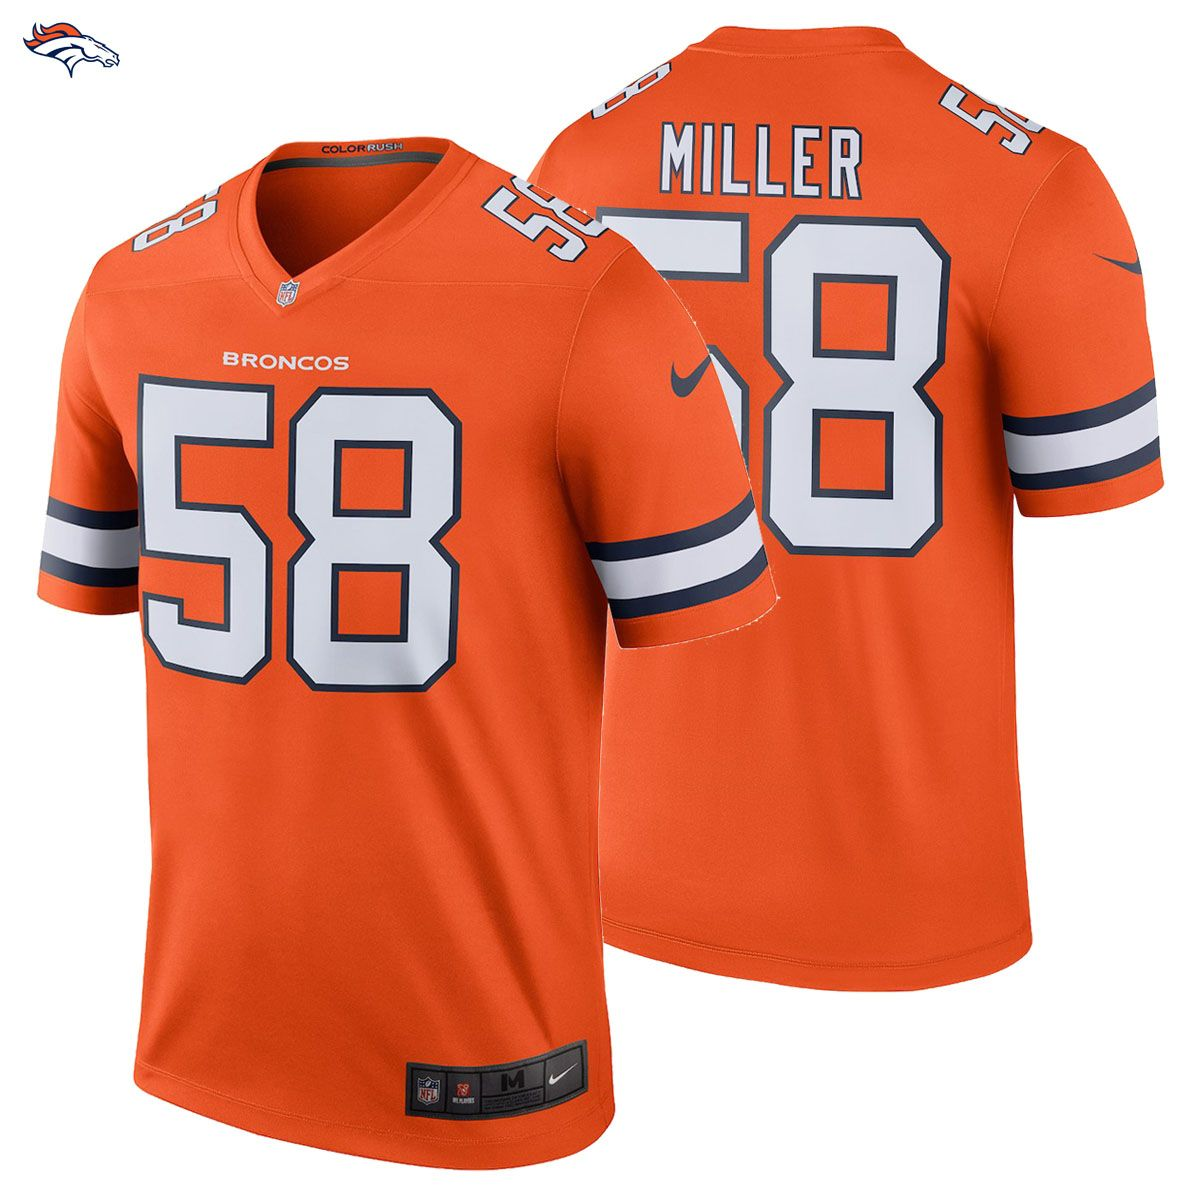 NEW 2018 NFL Von Miller Nike Color Rush Legend Jersey Denver Broncos  58  NWT The New Color Rush Edition Is HERE!!!! Gear up for the new 2018 19 NFL  season ... b559ee591